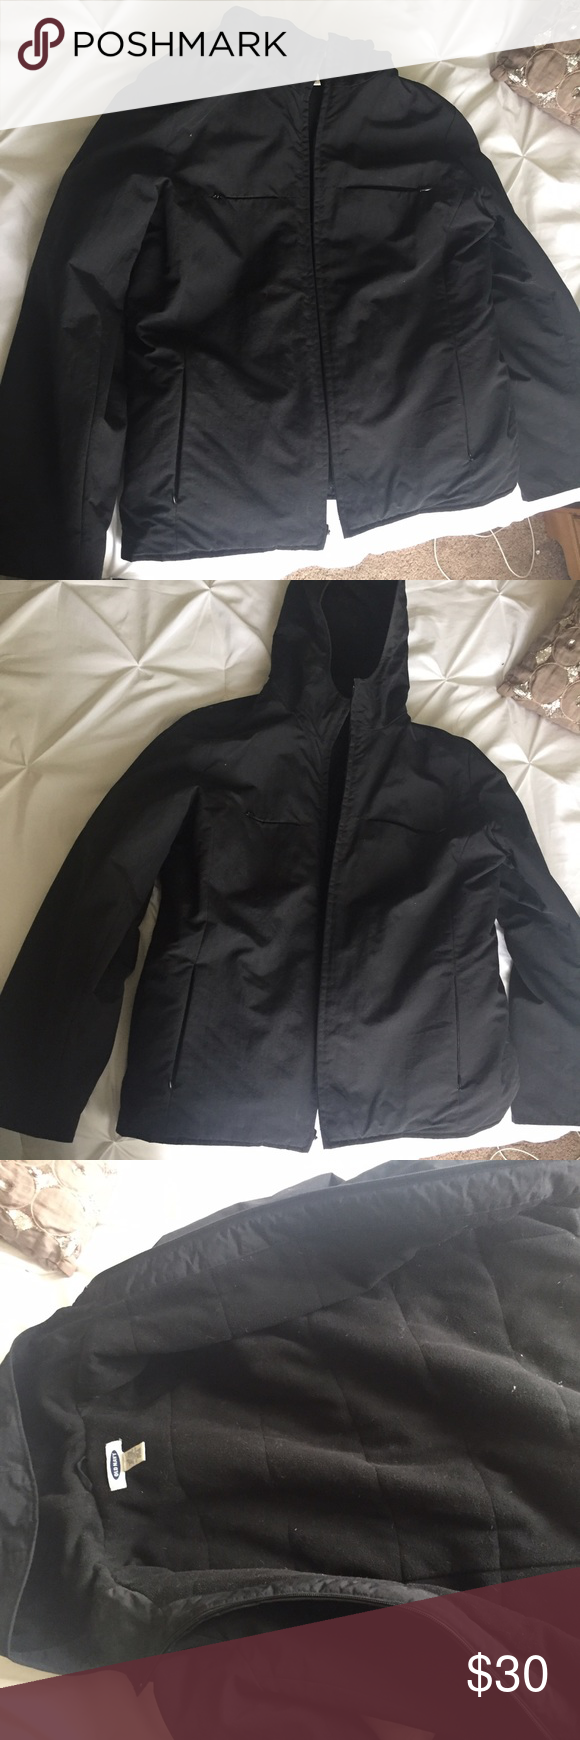 Black Cold weather Jacket Old navy- large cold wind breaker- weather jacket. Water resistant she'll- fleece inside. Super warm and comfortable! Used for snow and rain and wind winter weather. Used good condition Old Navy Jackets & Coats